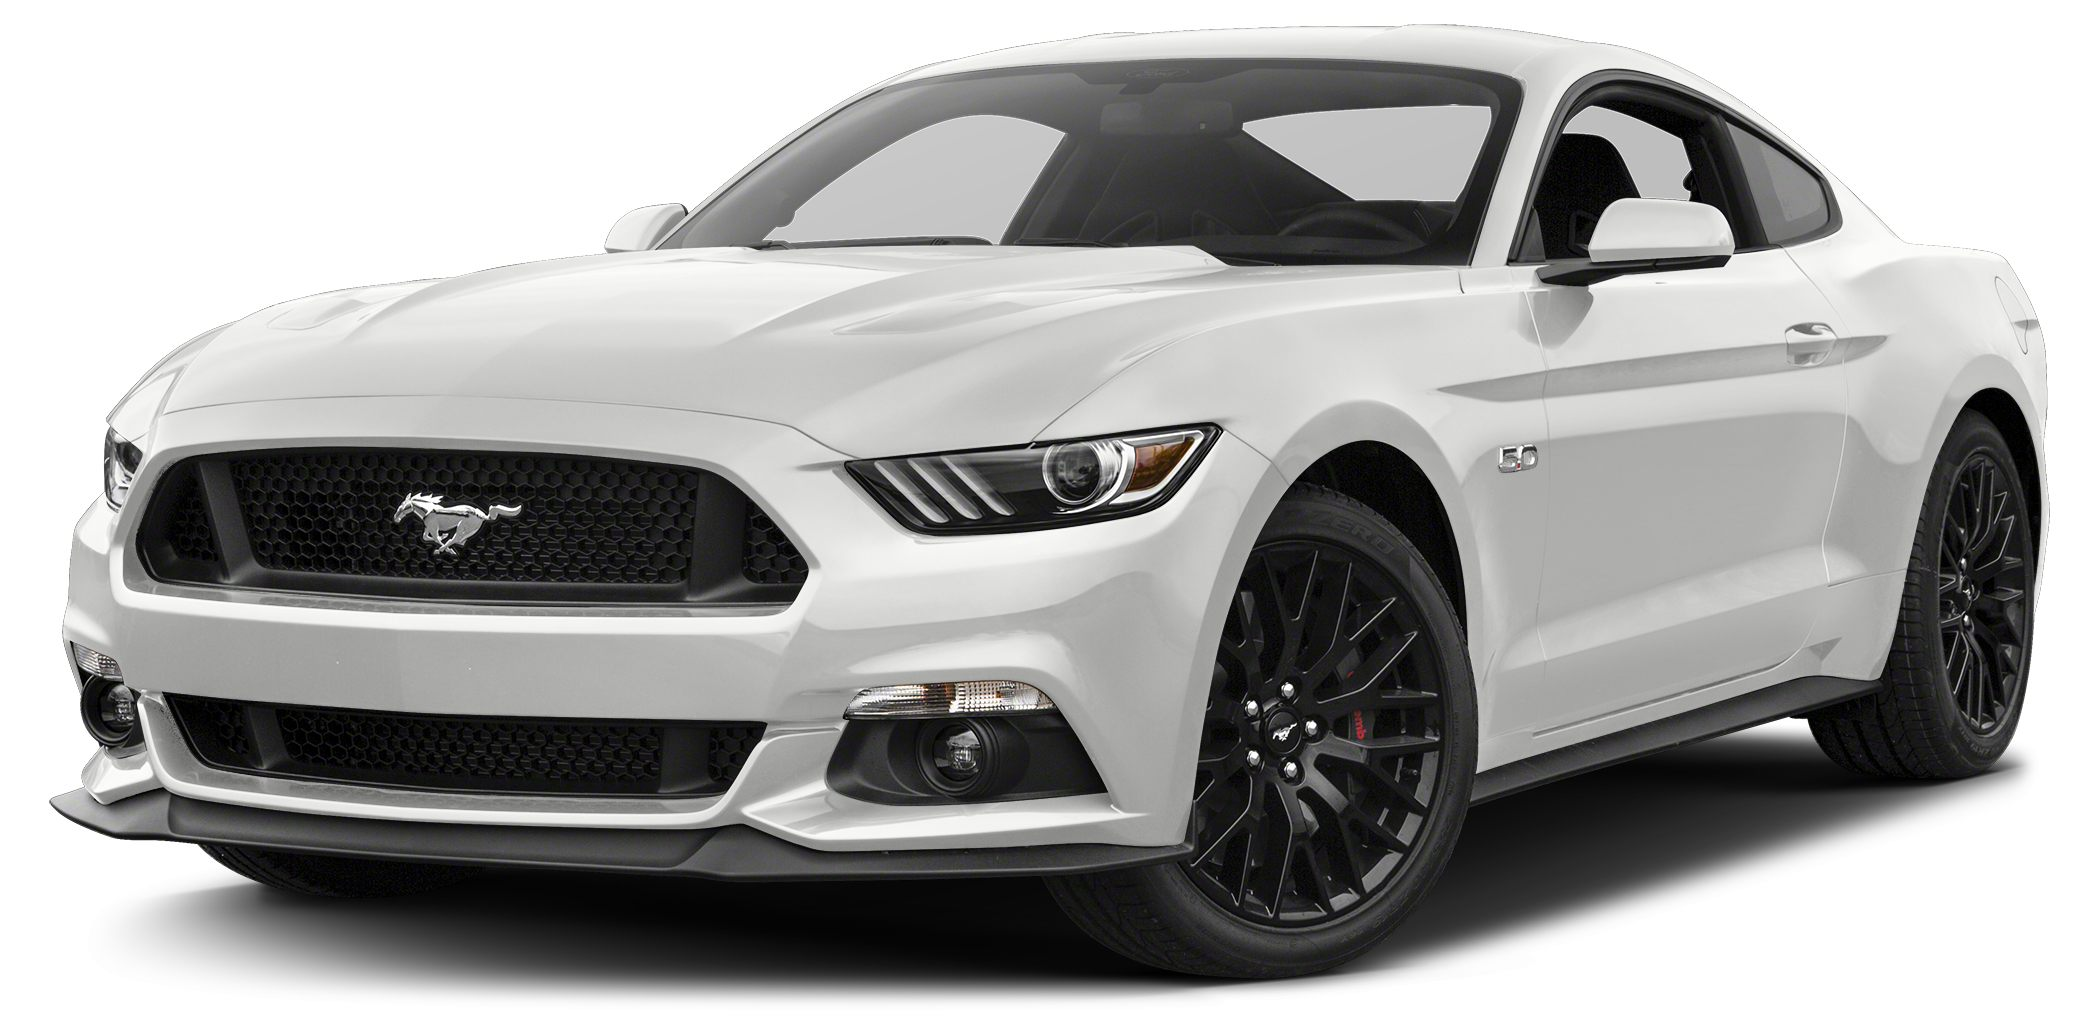 2016 Ford Mustang GT The Ford Mustang is an American classic that lives on The body has been desi